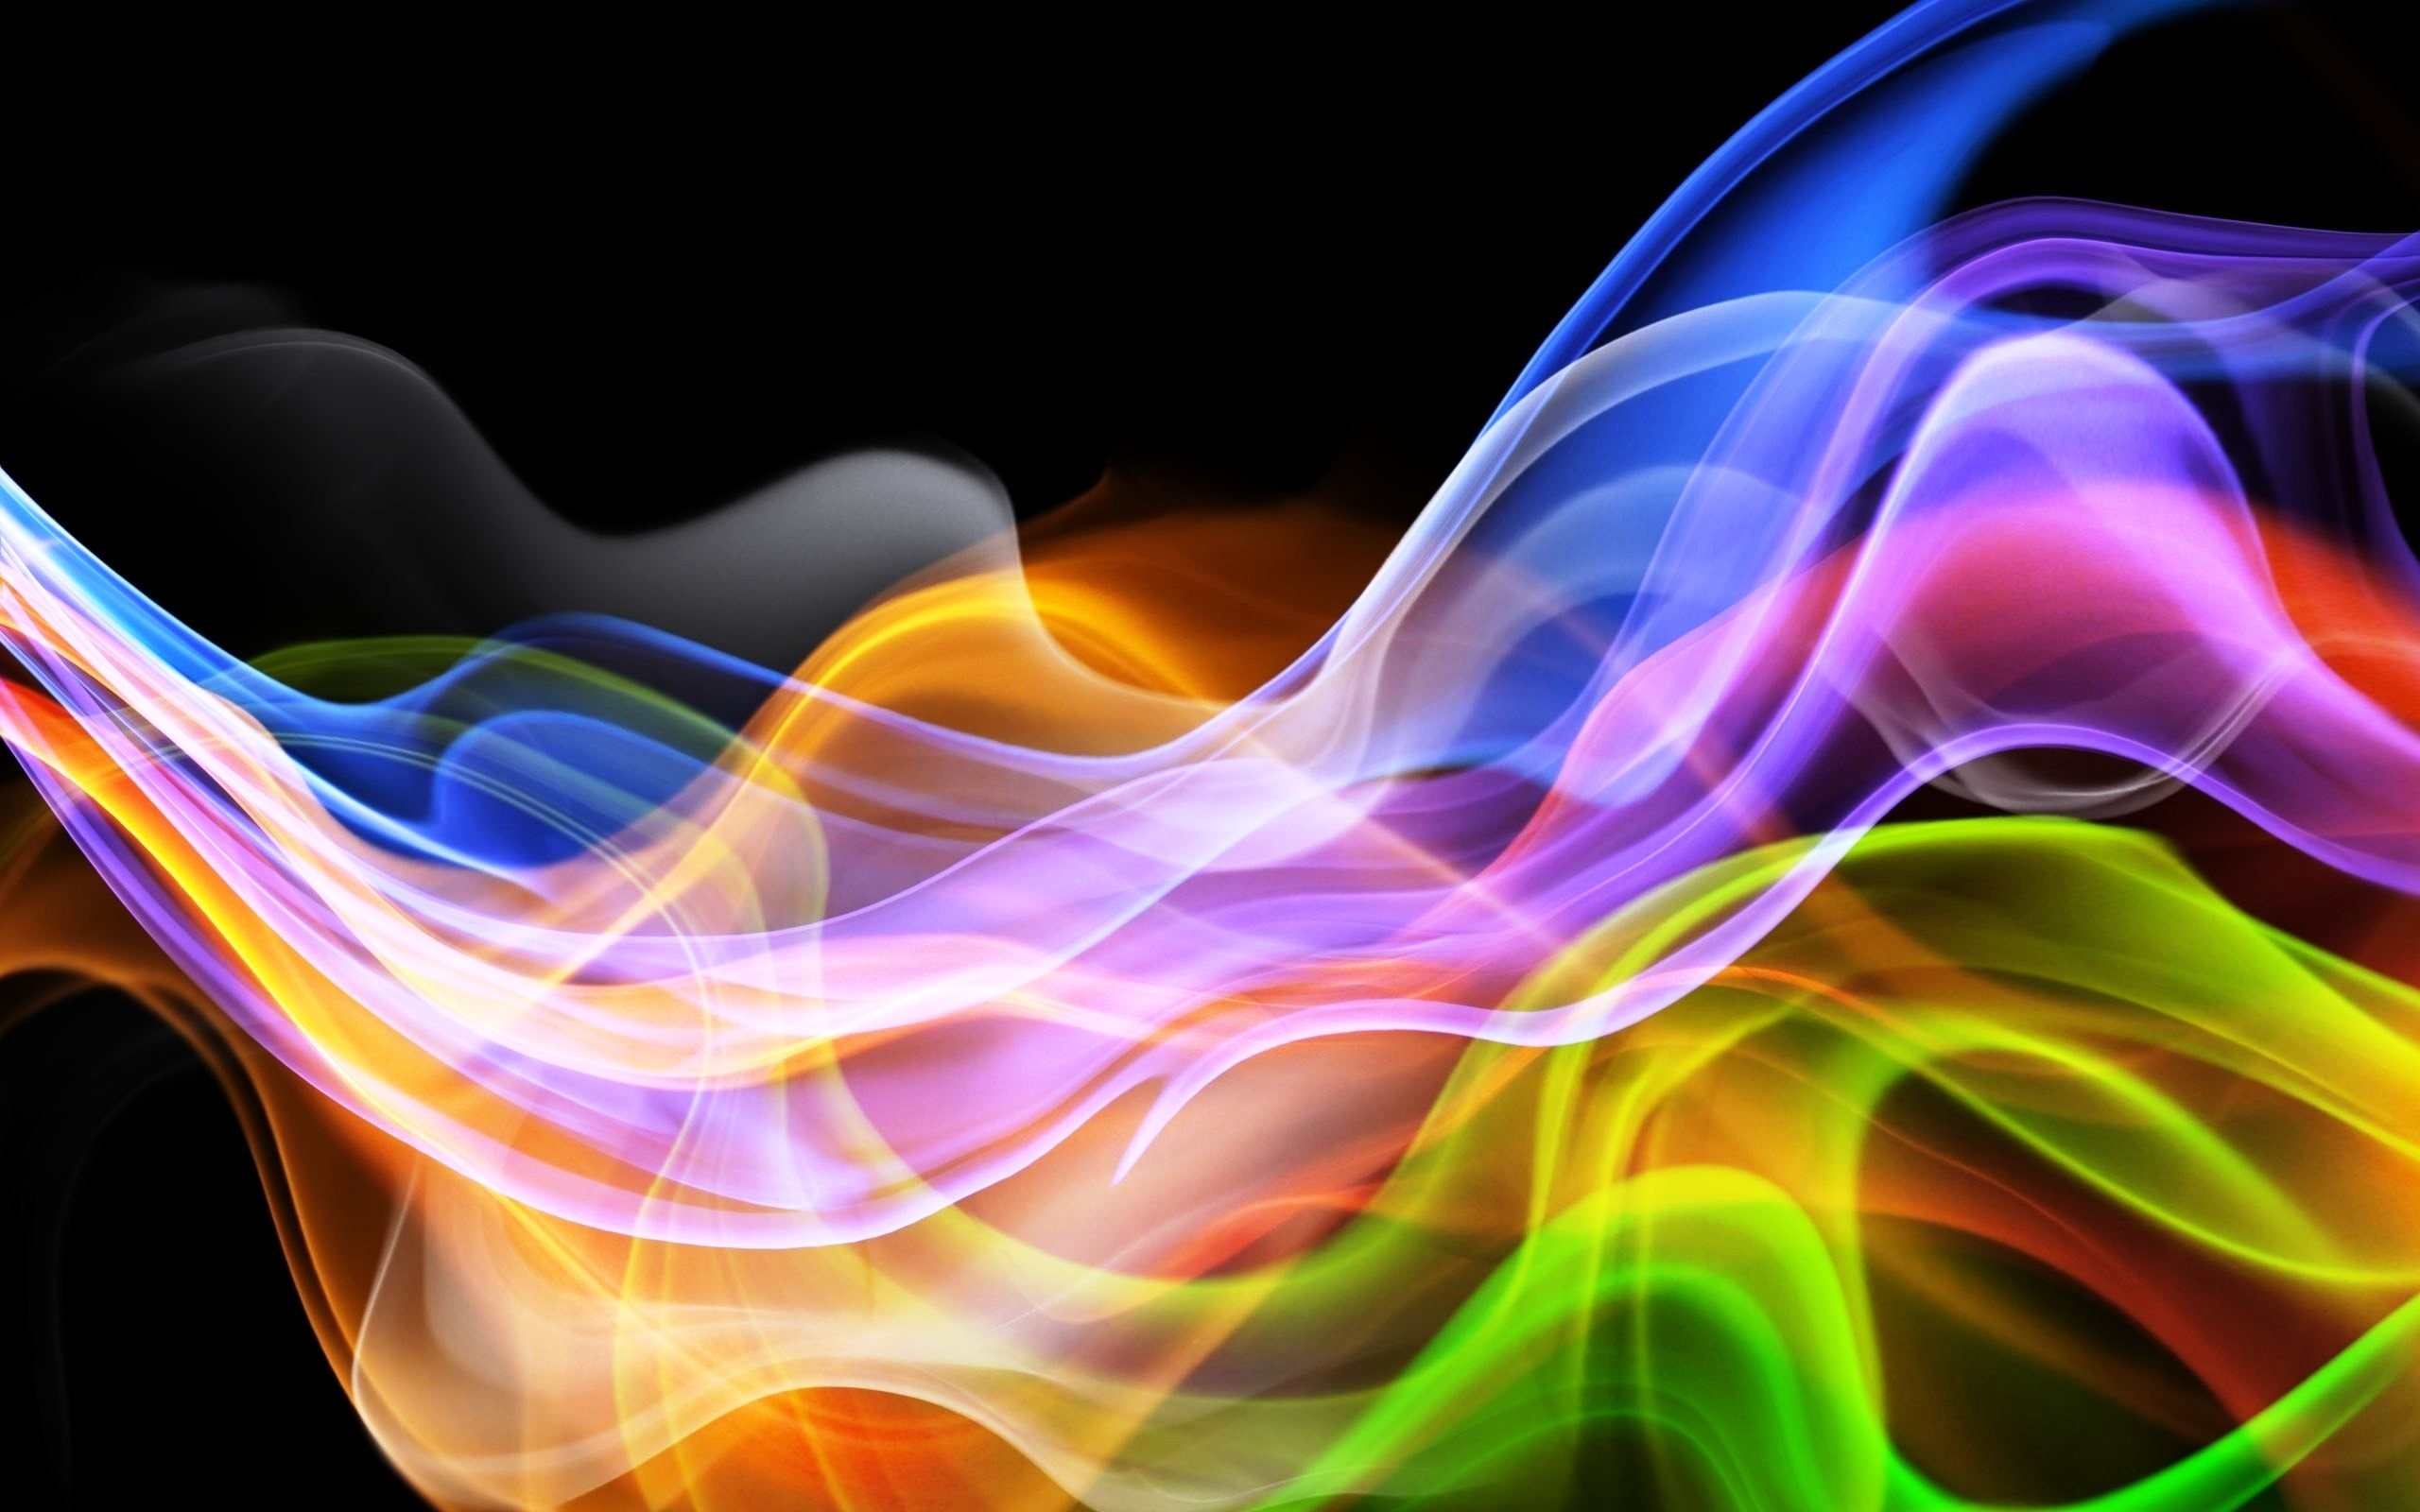 Super Awesome Phone Wallpapers For Youuuuu   Data-src - Abstract Color Smoke - HD Wallpaper